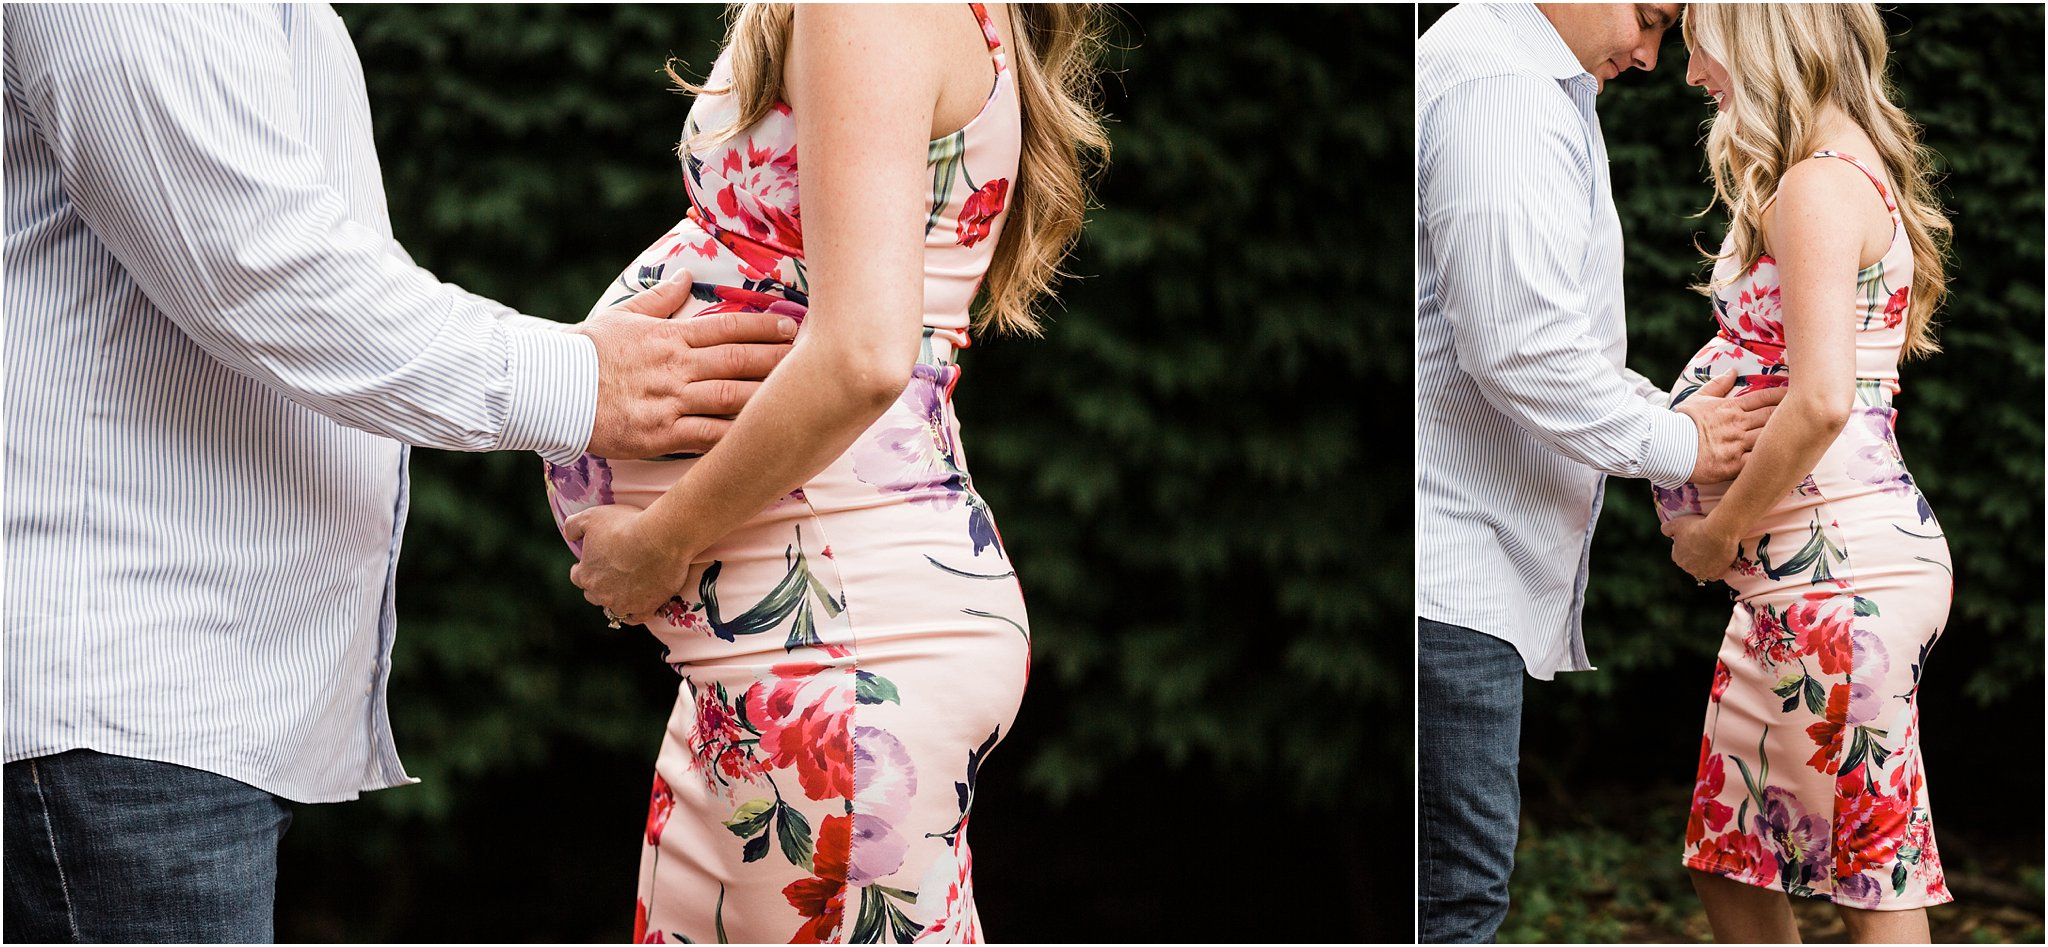 floral maternity dress bump photos with husband